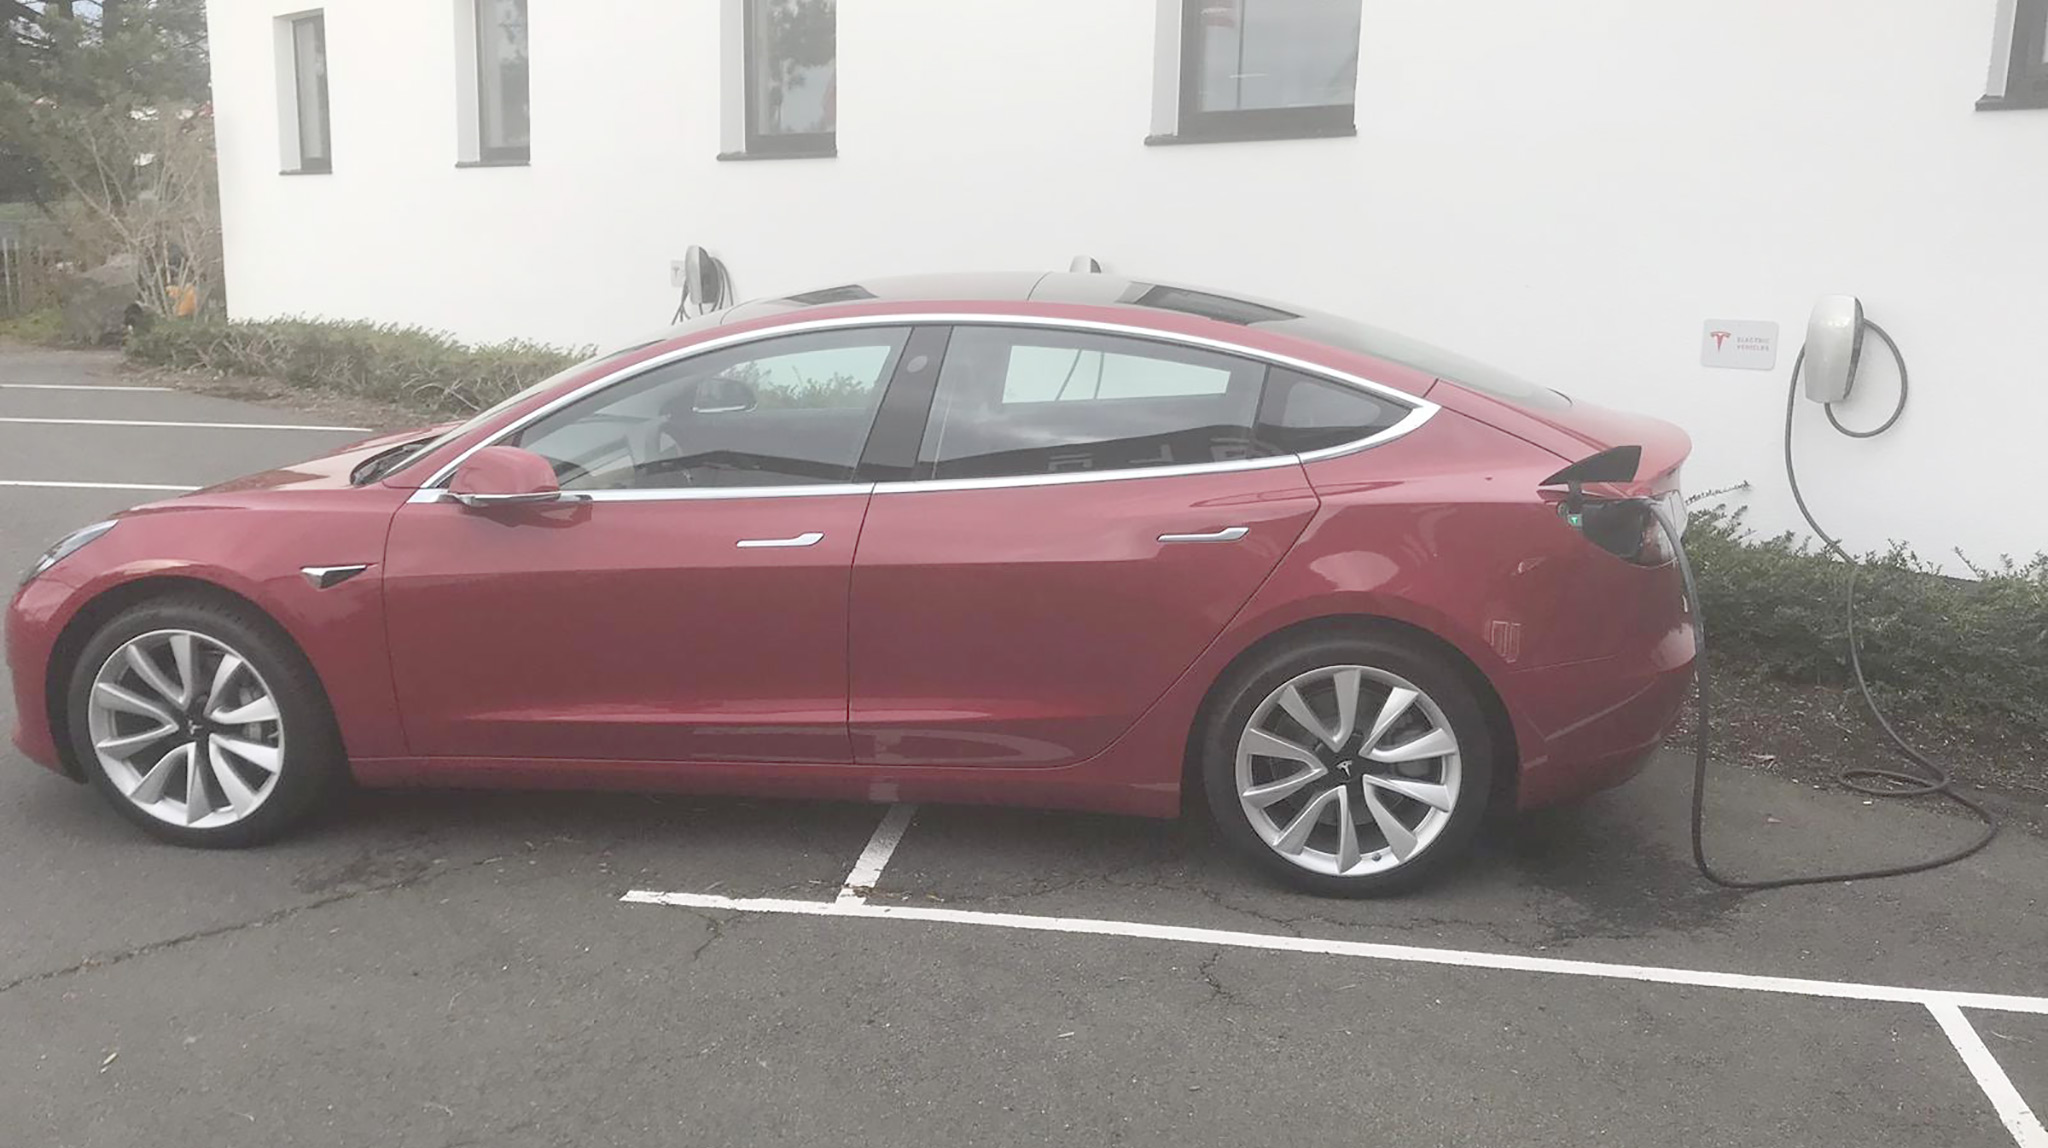 Tesla Model 3 Europe - Spotted at Tesla Grohmann, Germany